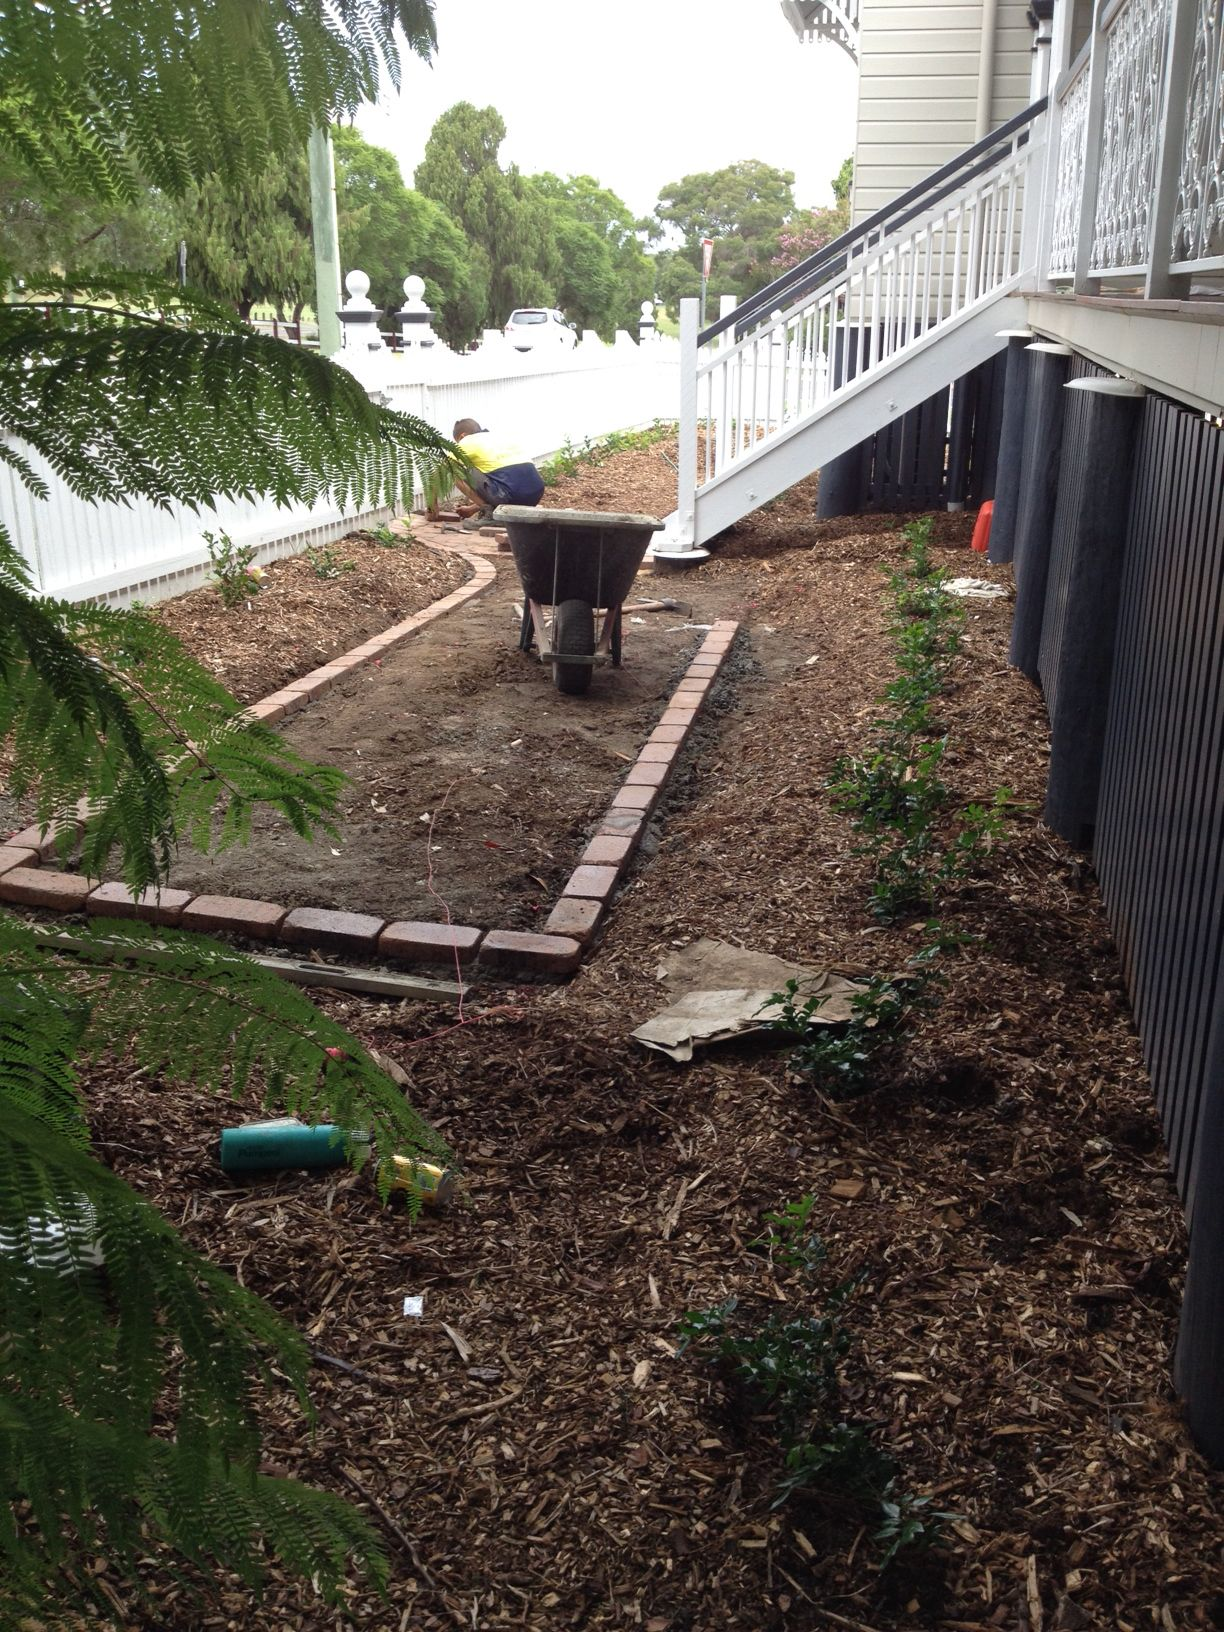 Paving and garden borders underway (With images) | Garden ...